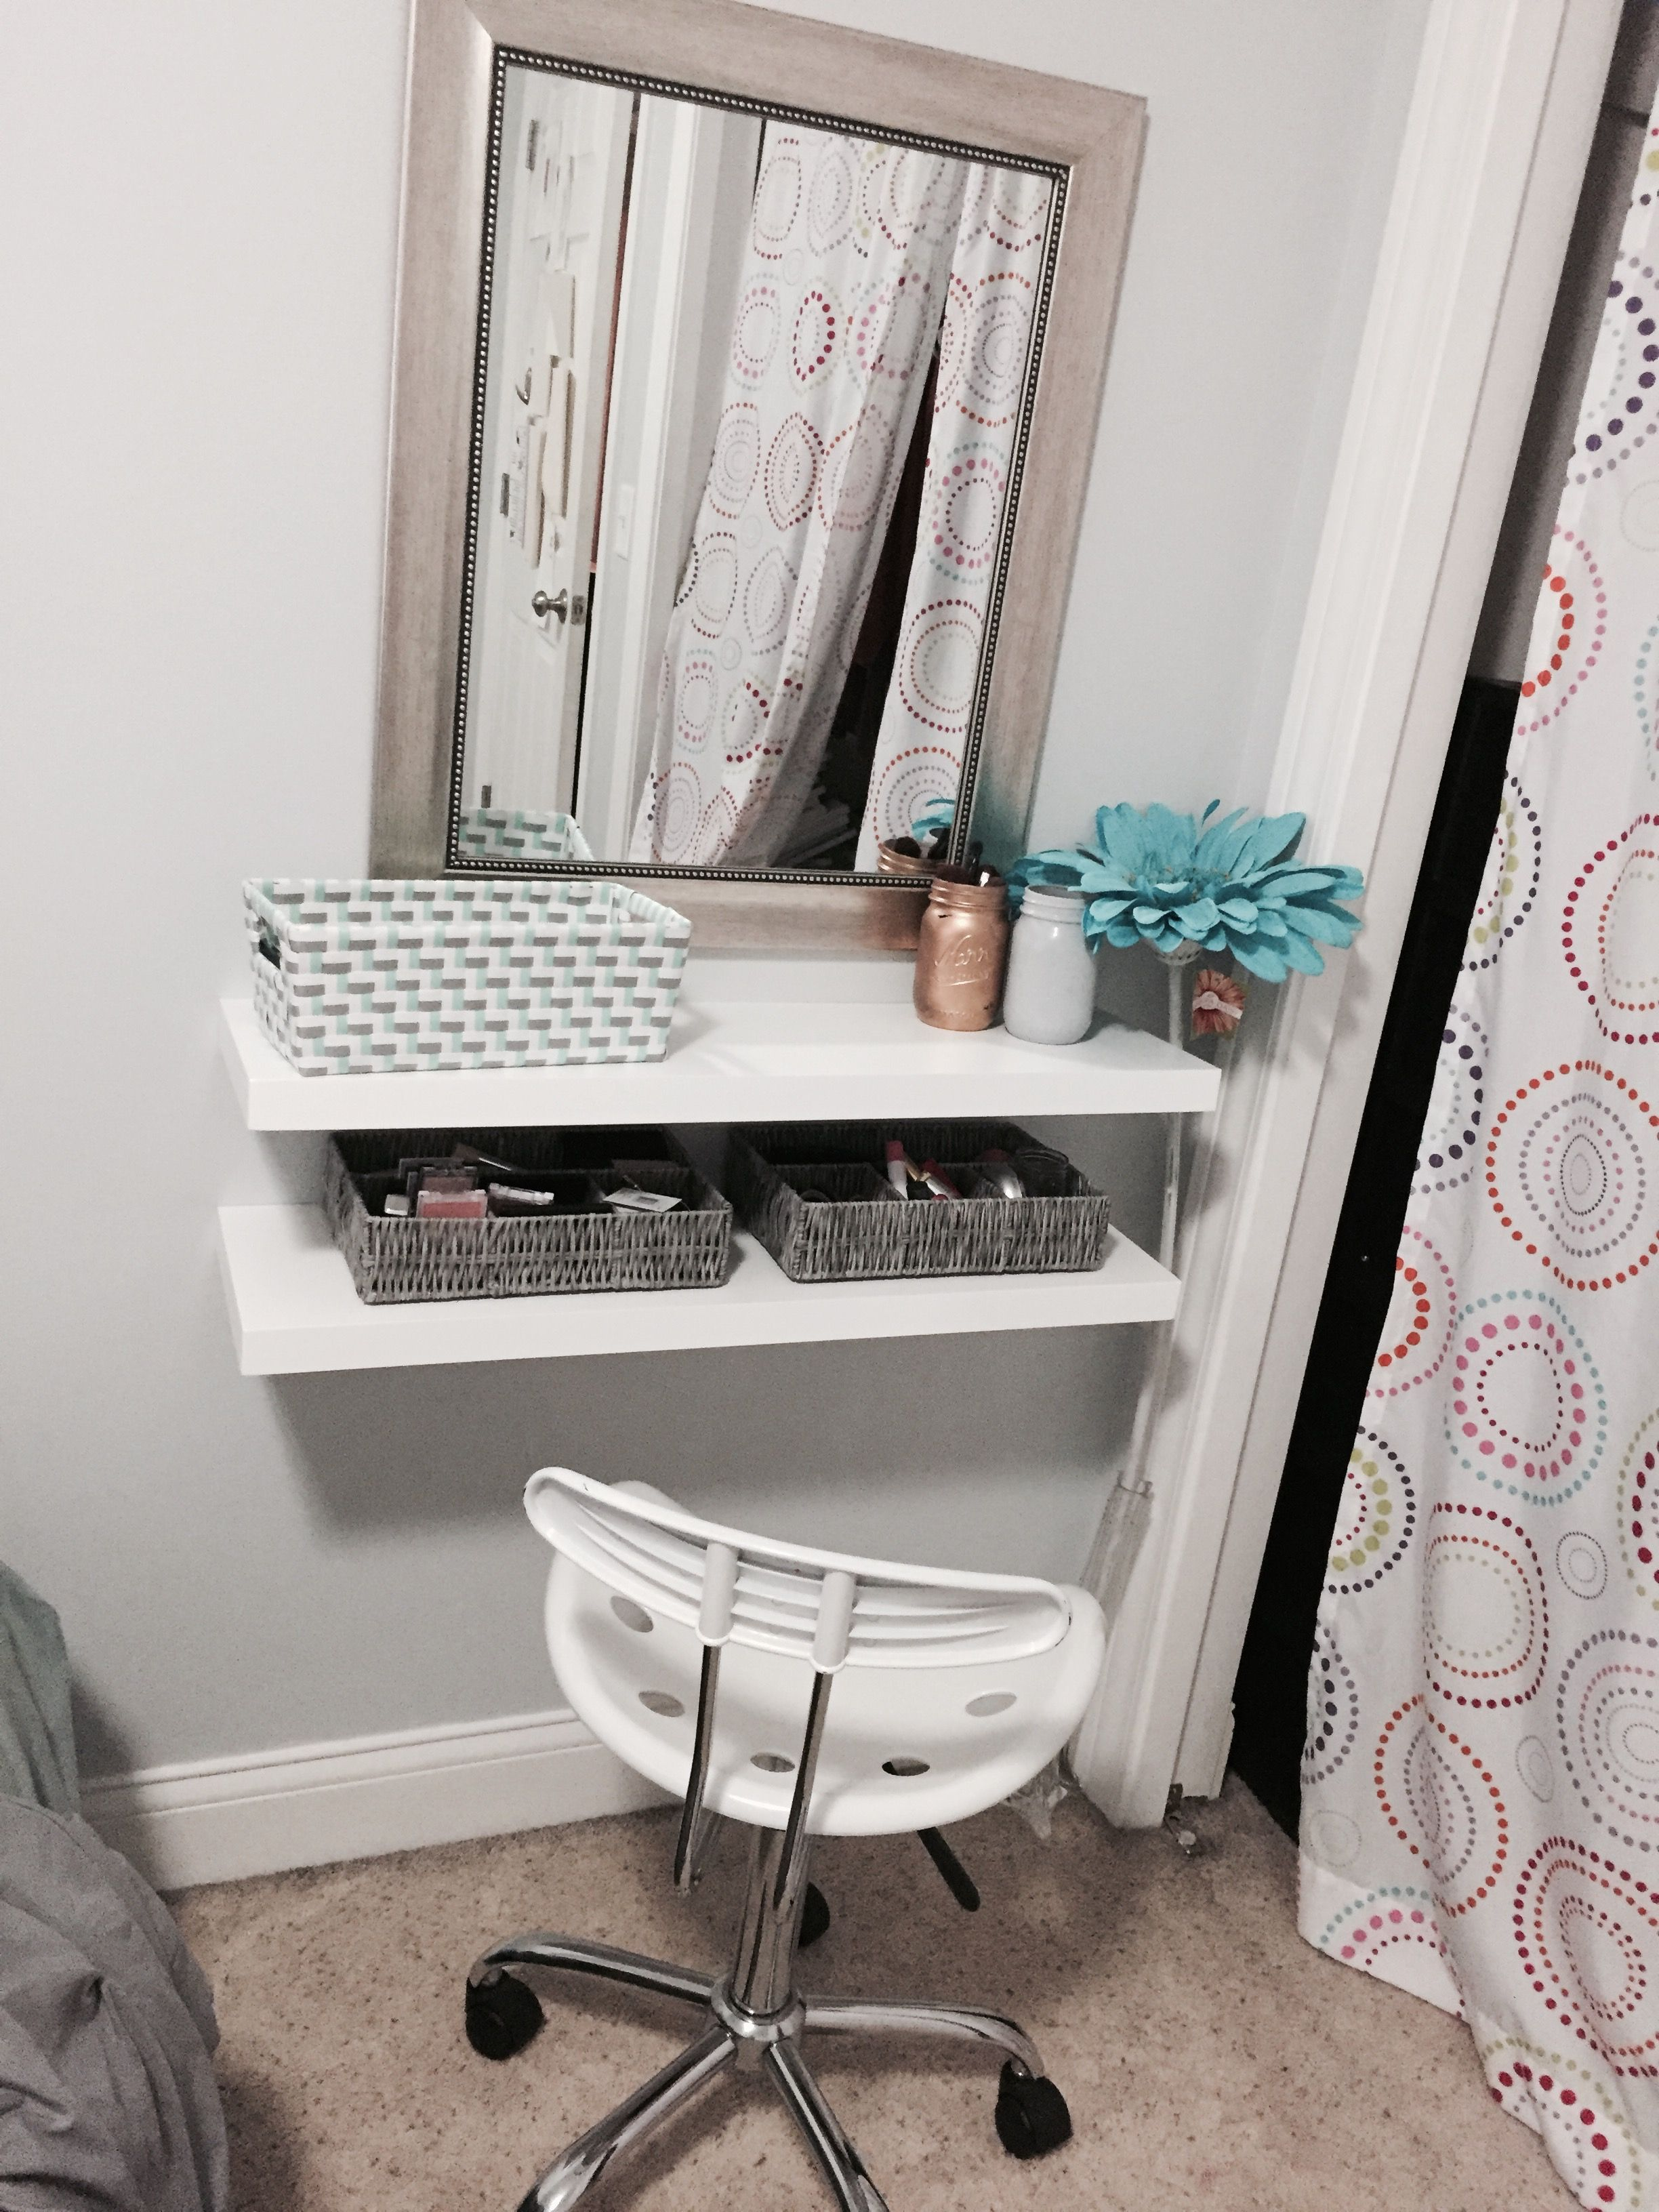 Diy Floating Shelves Makeup Vanity Diy Vanity Table Vanity Room Decor Diy Vanity